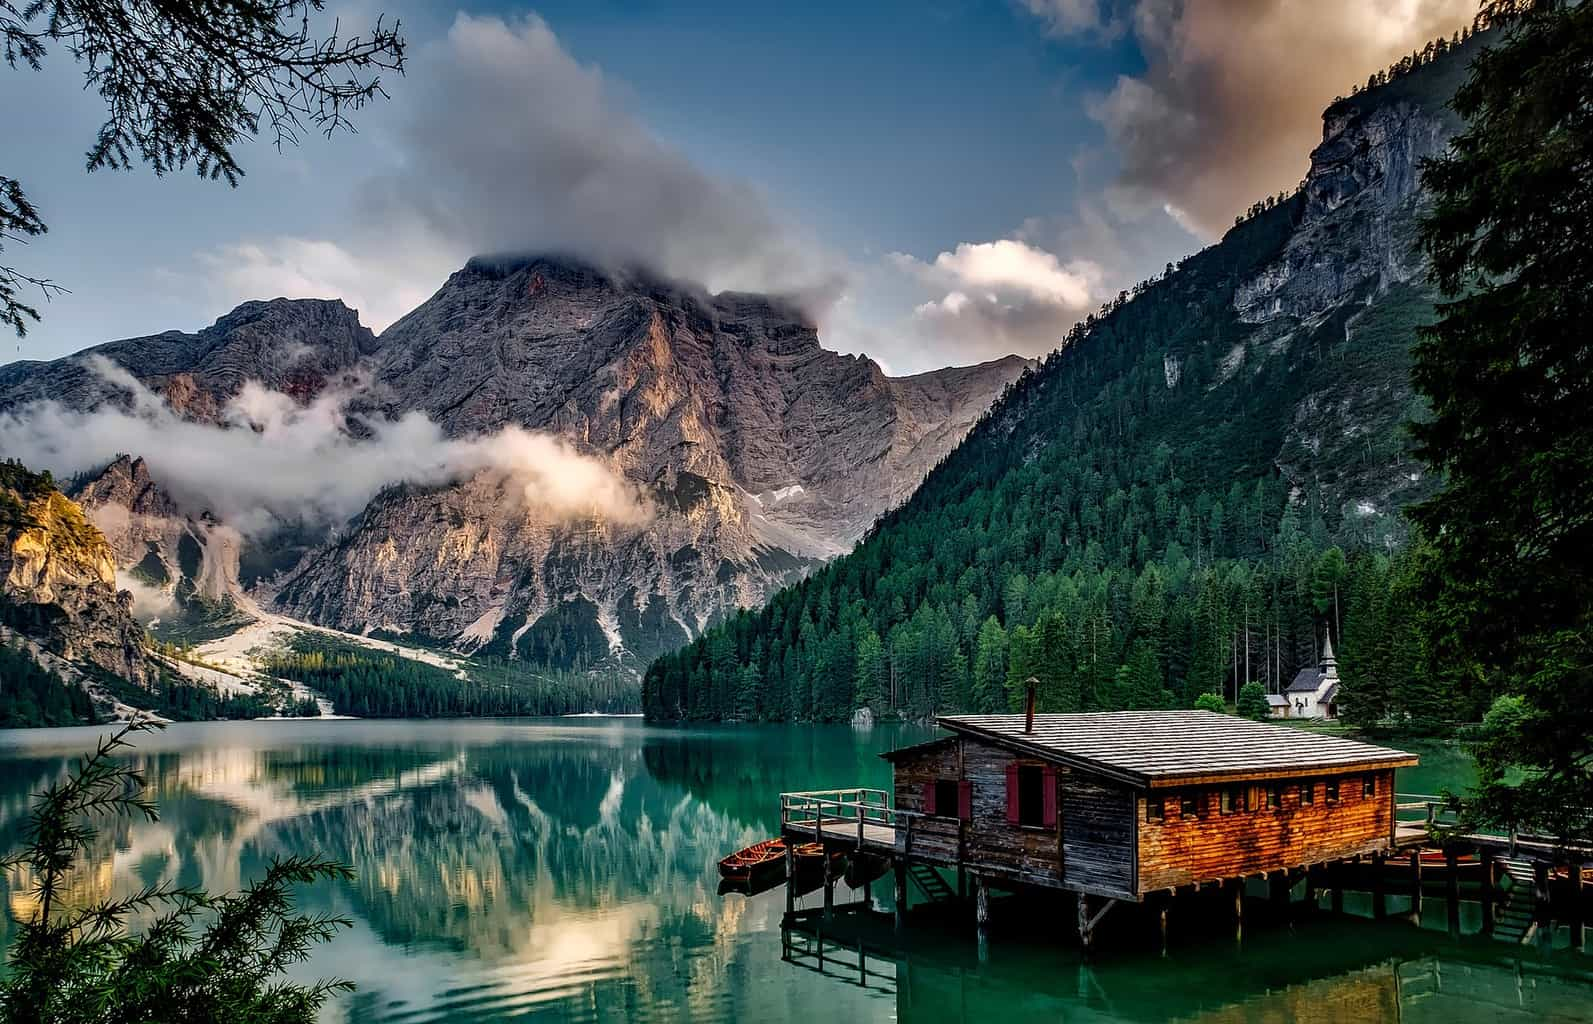 A highly-reflective lake with mountains in the background and a wooden shack over it